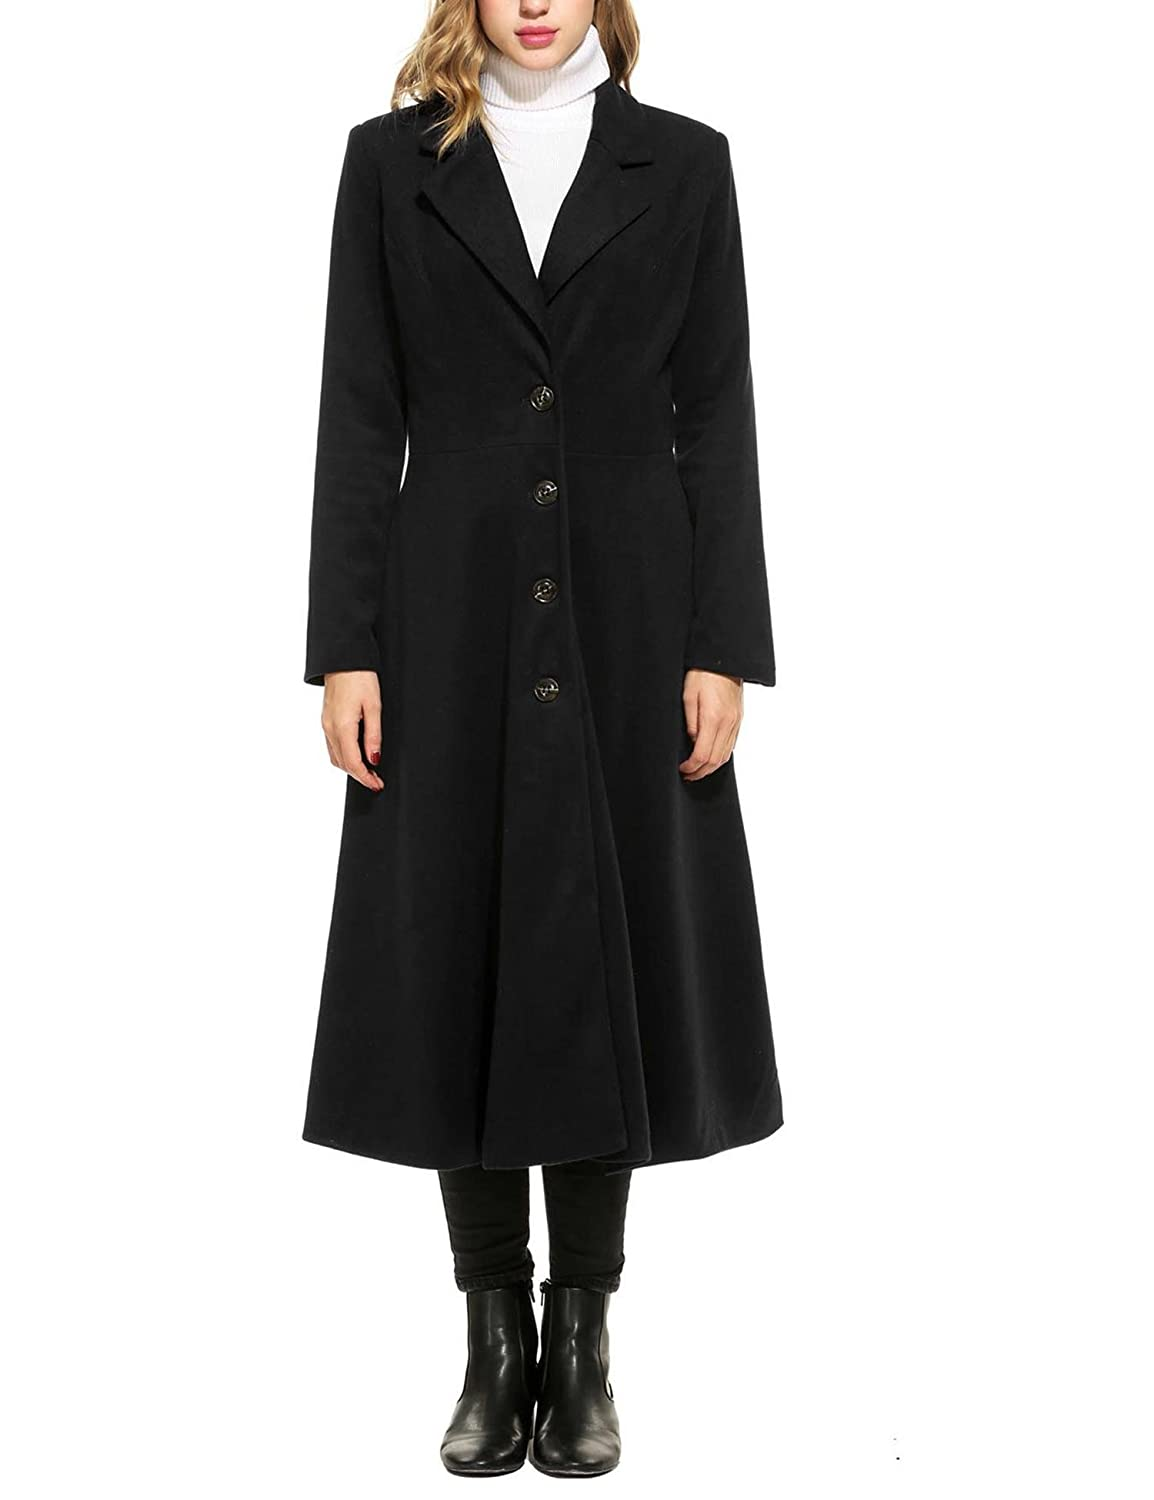 1940s Coats & Jackets Fashion History Mofavor Women Long Trench Coat Single Breasted Casual Swing Coat Overcoat Wool Pea Coat $55.89 AT vintagedancer.com